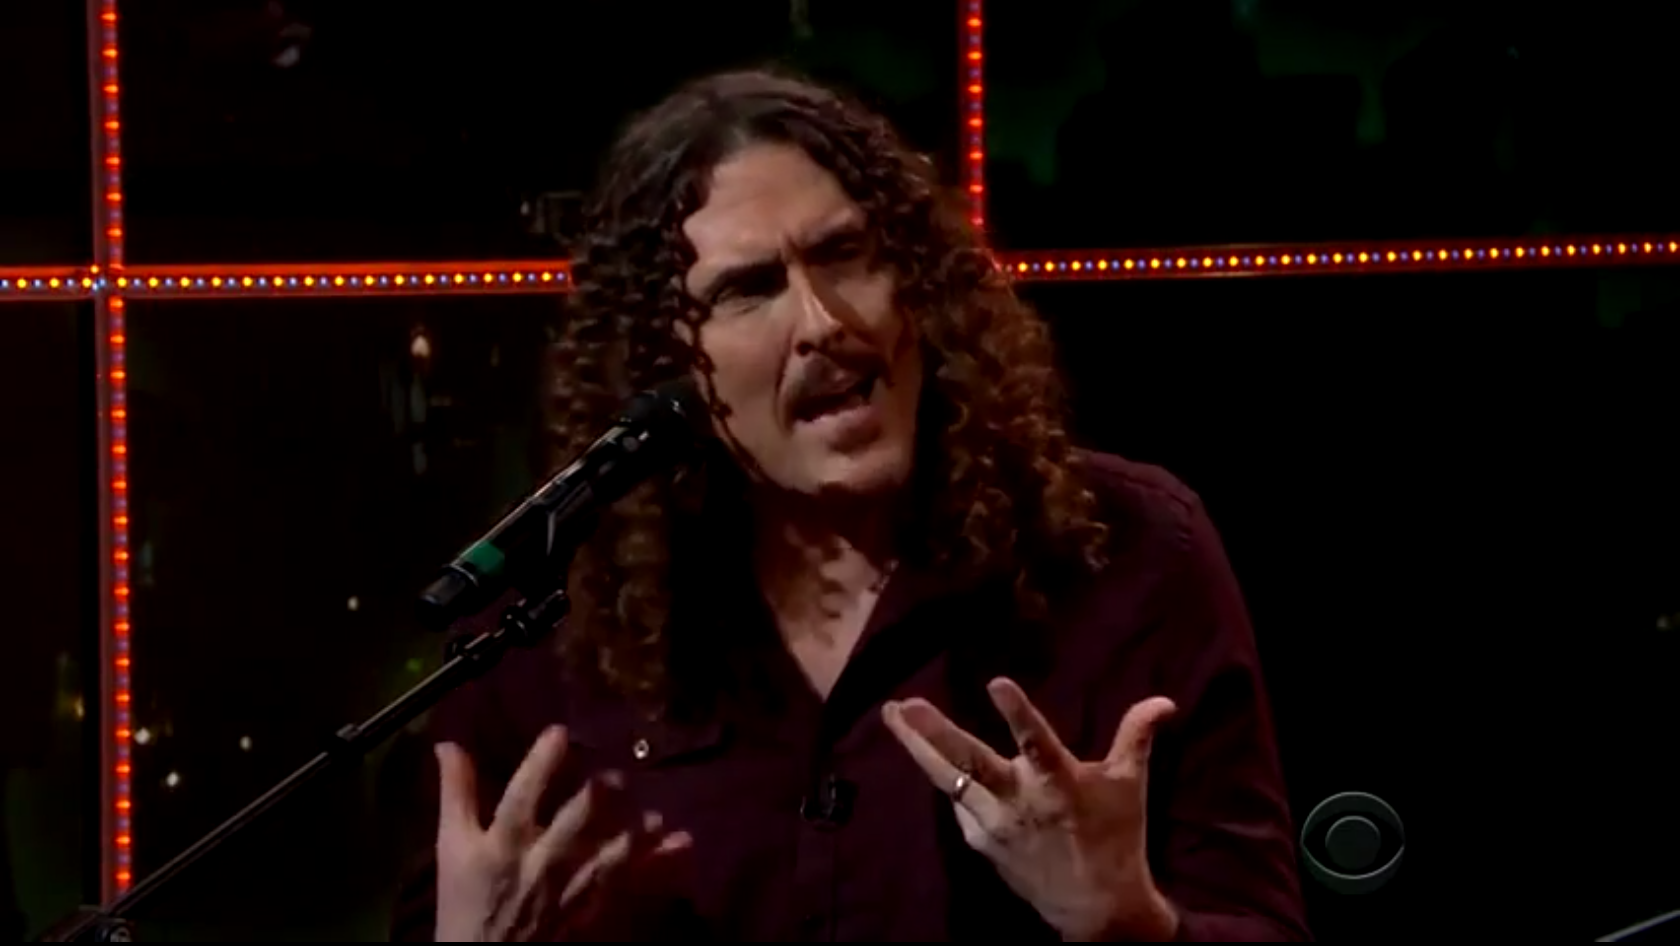 Watch Weird Al &#8220;Cover&#8221; Woody Guthrie On <em>The Late Late Show</em>